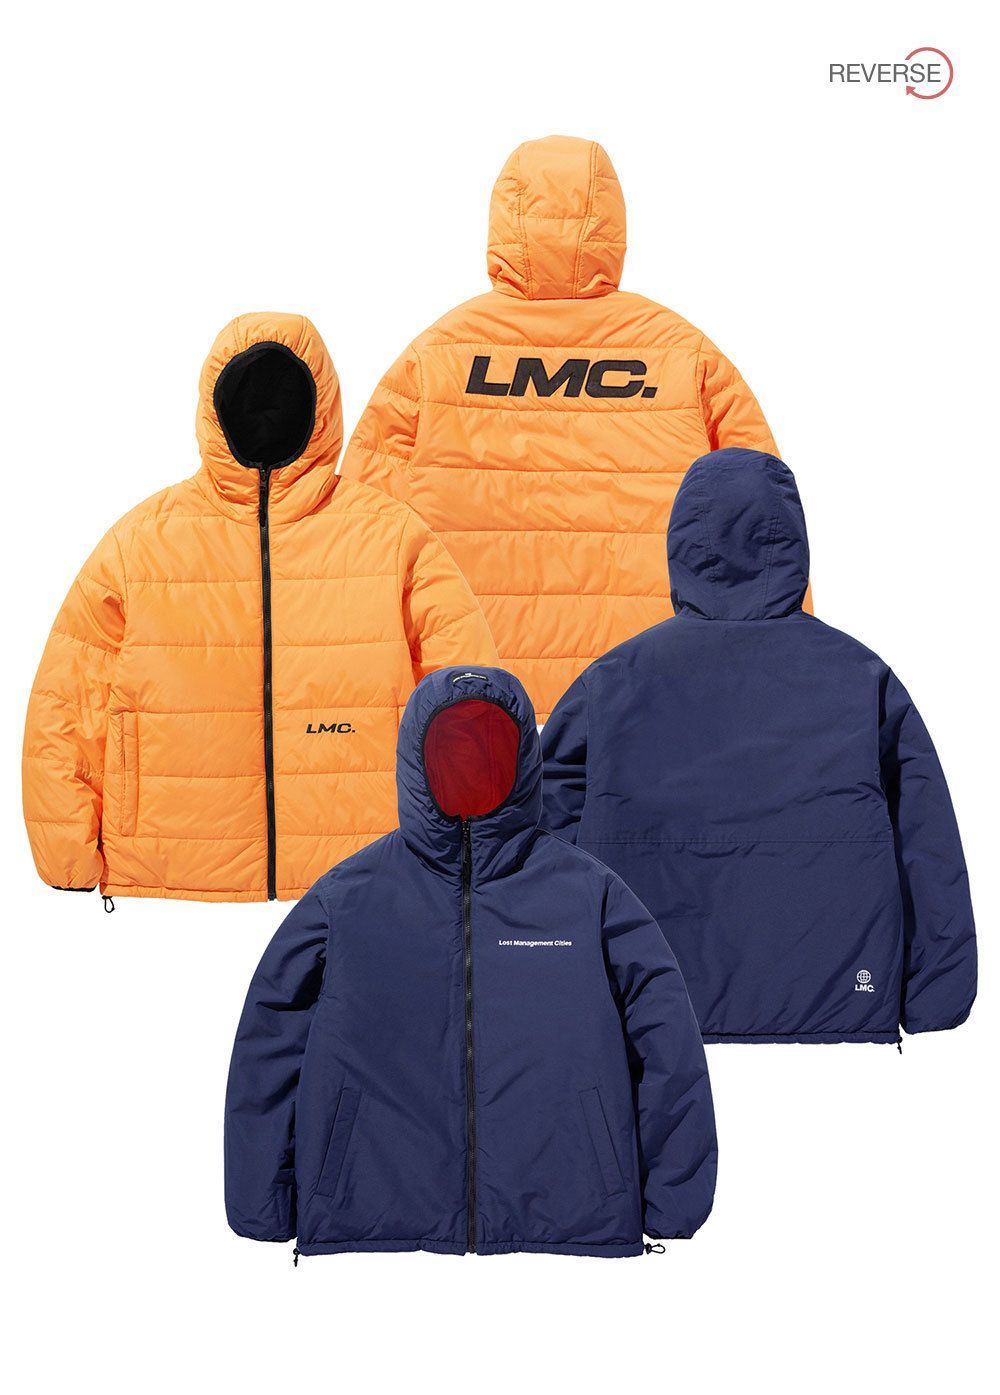 LMC THINSULATE REVERSIBLE HOODED JACKET or/nv